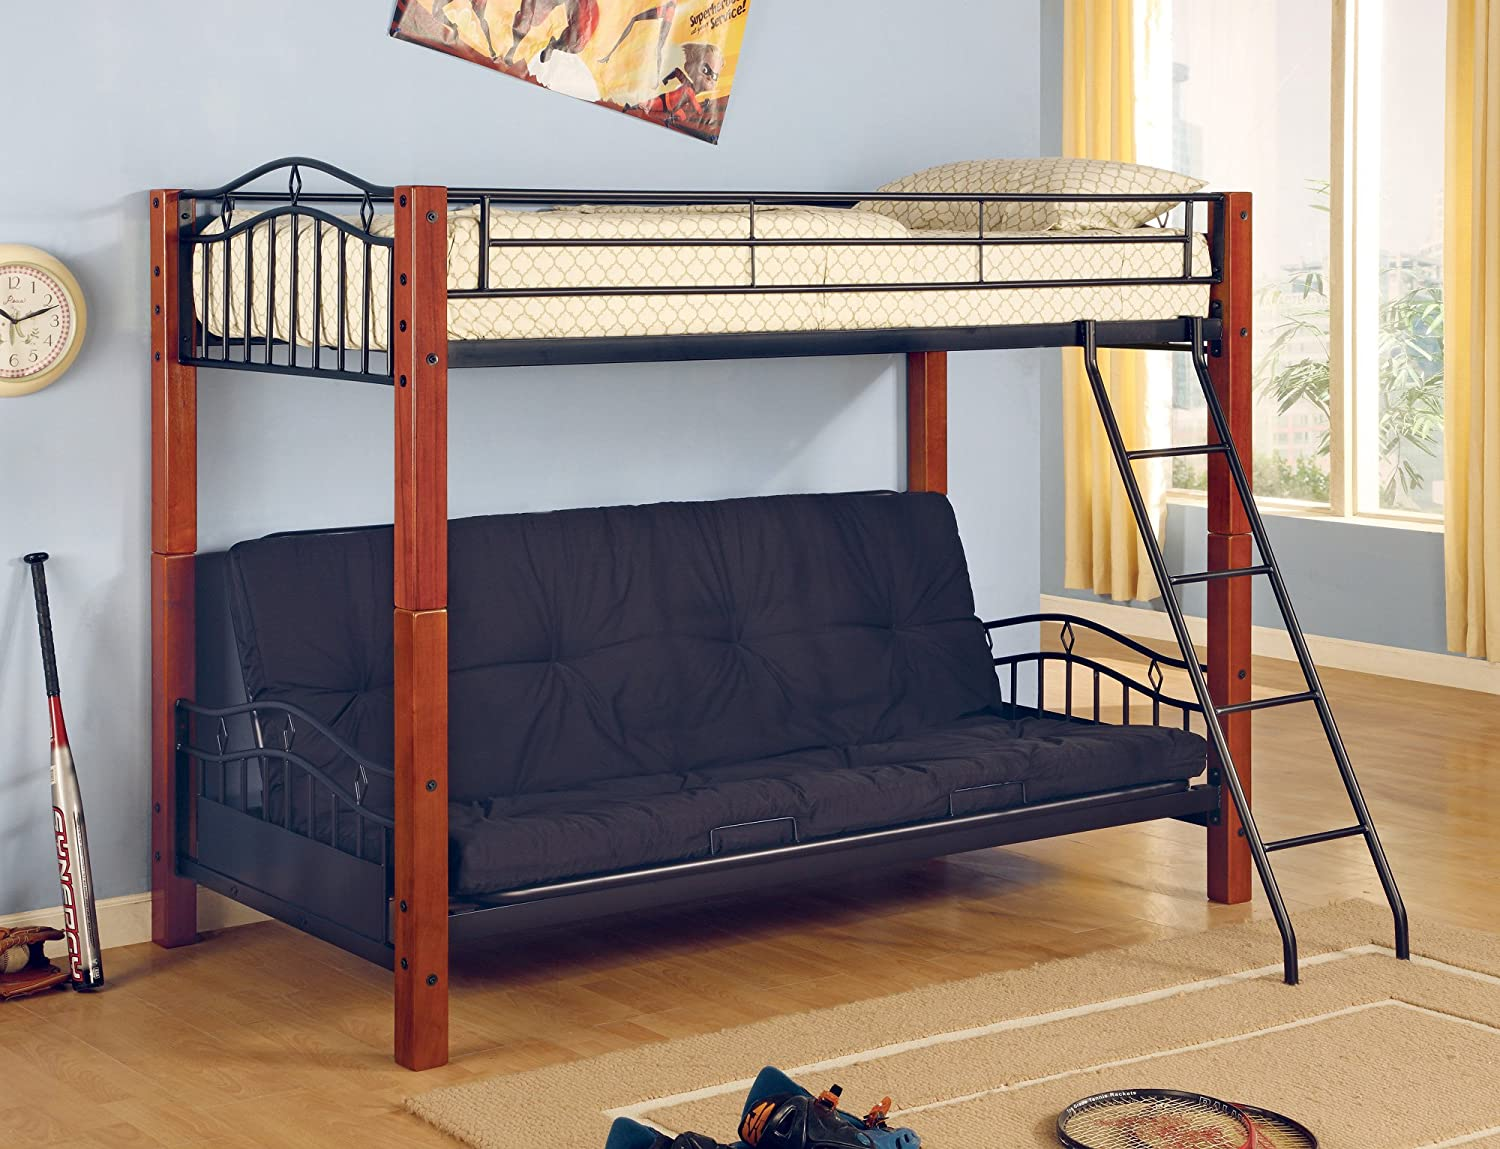 Woodworking futon bunk beds PDF Free Download